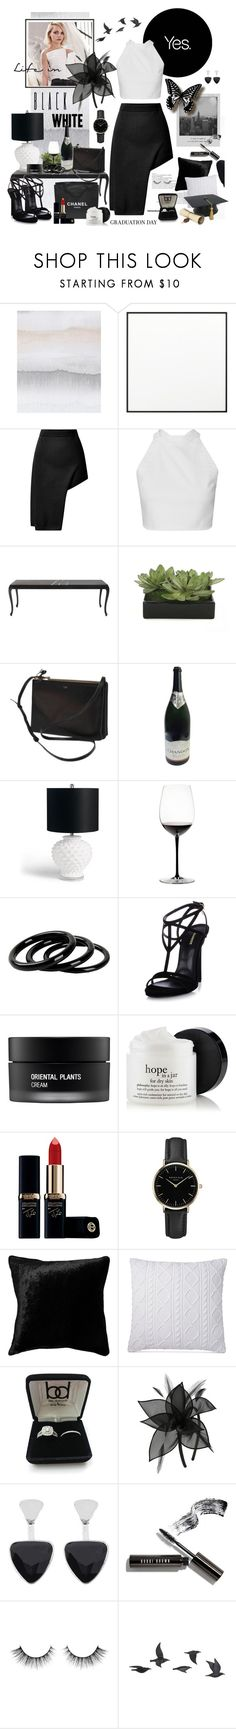 """Life in Black & White"" by fashionstudiolondon ❤ liked on Polyvore featuring WALL, By Lassen, Meggie, Opening Ceremony, Chanel, Lux-Art Silks, CÉLINE, Grandin Road, Riedel and Furla"